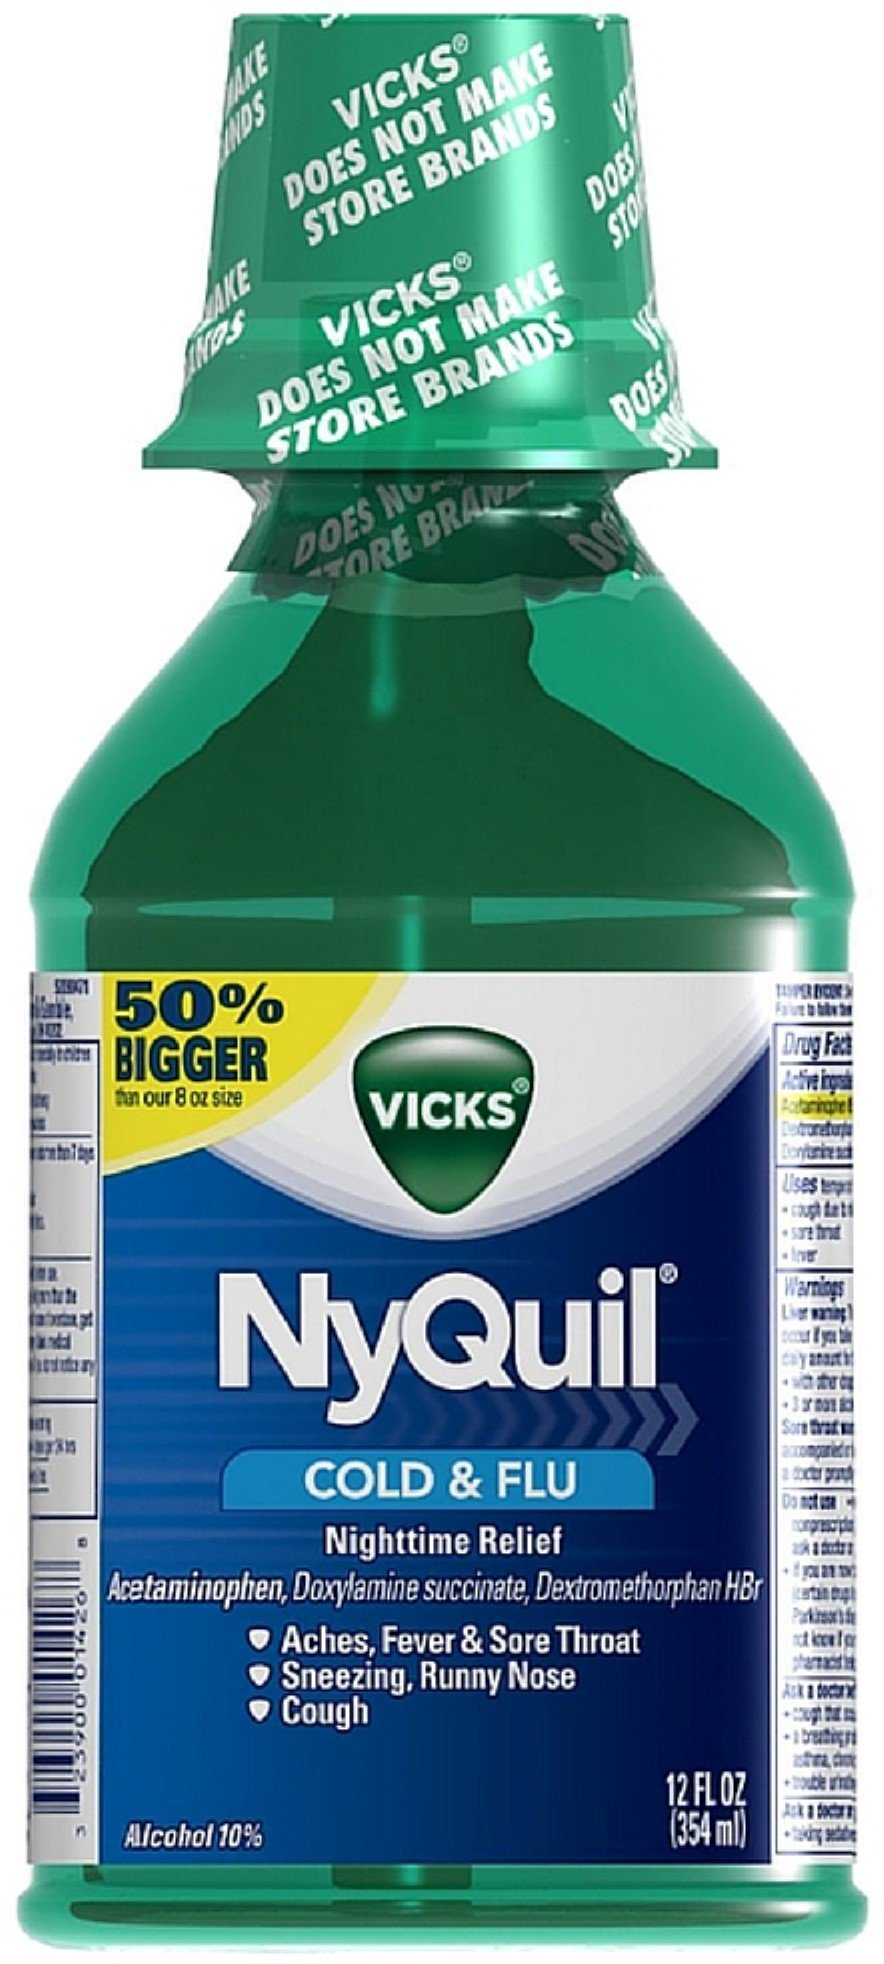 Vicks Nyquil Cold & Flu Nighttime Relief Liquid, Original Flavor 12 oz (Pack of 8)